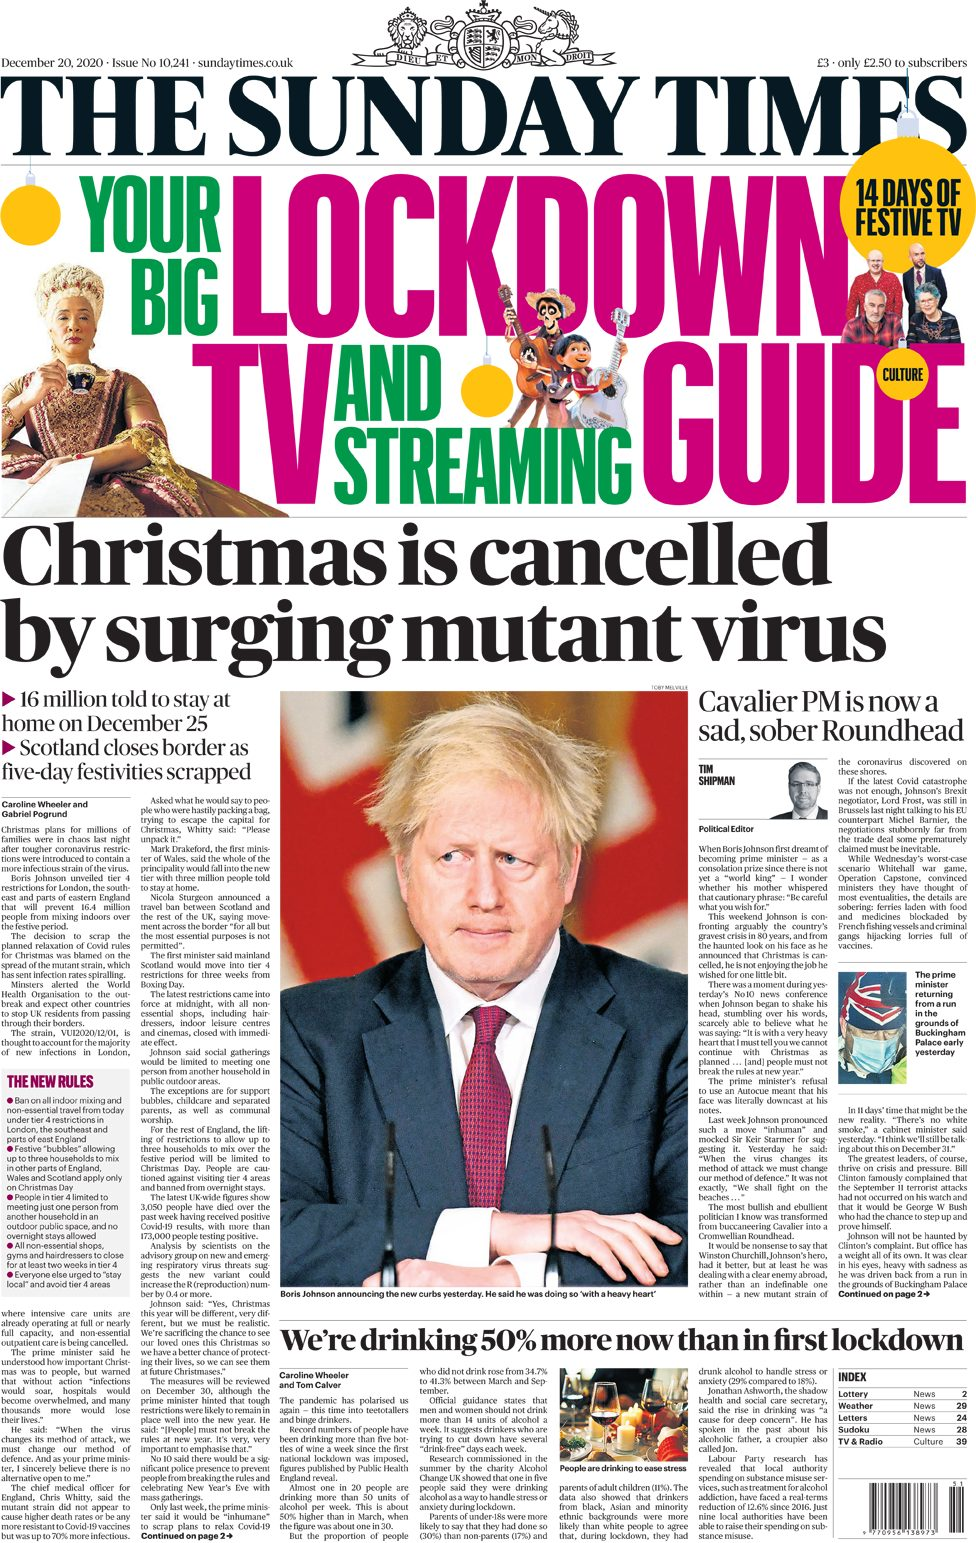 The Sunday Times leads with 'Christmas is cancelled by surging mutating virus'